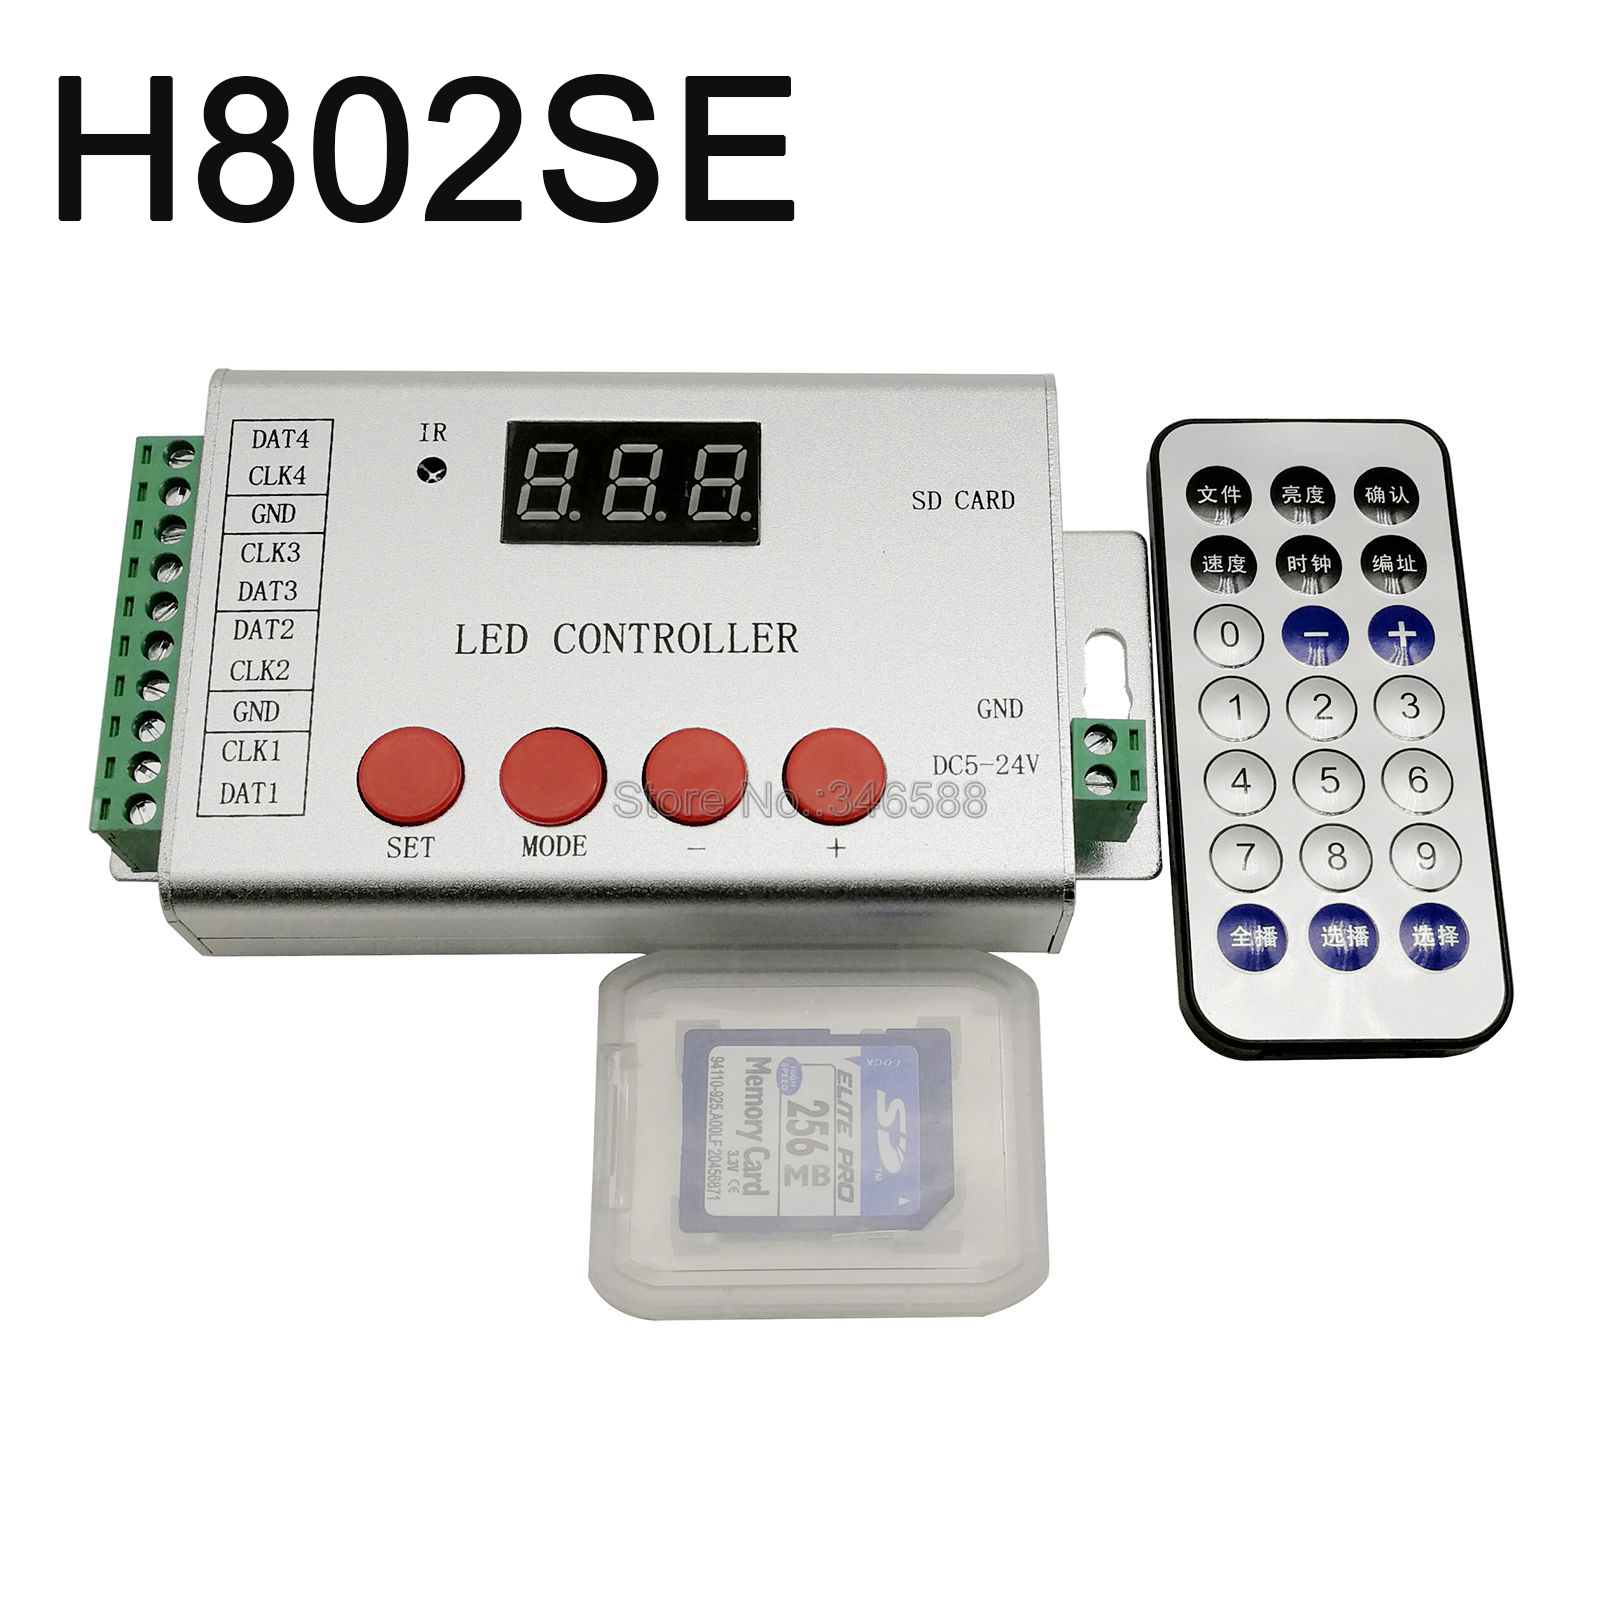 H802SE Pixel LED Controller with 4 Ports Drive 6144 Pixels Support DMX512 WS2811 WS2812 APA102 etc IR Wireless Remote Control image